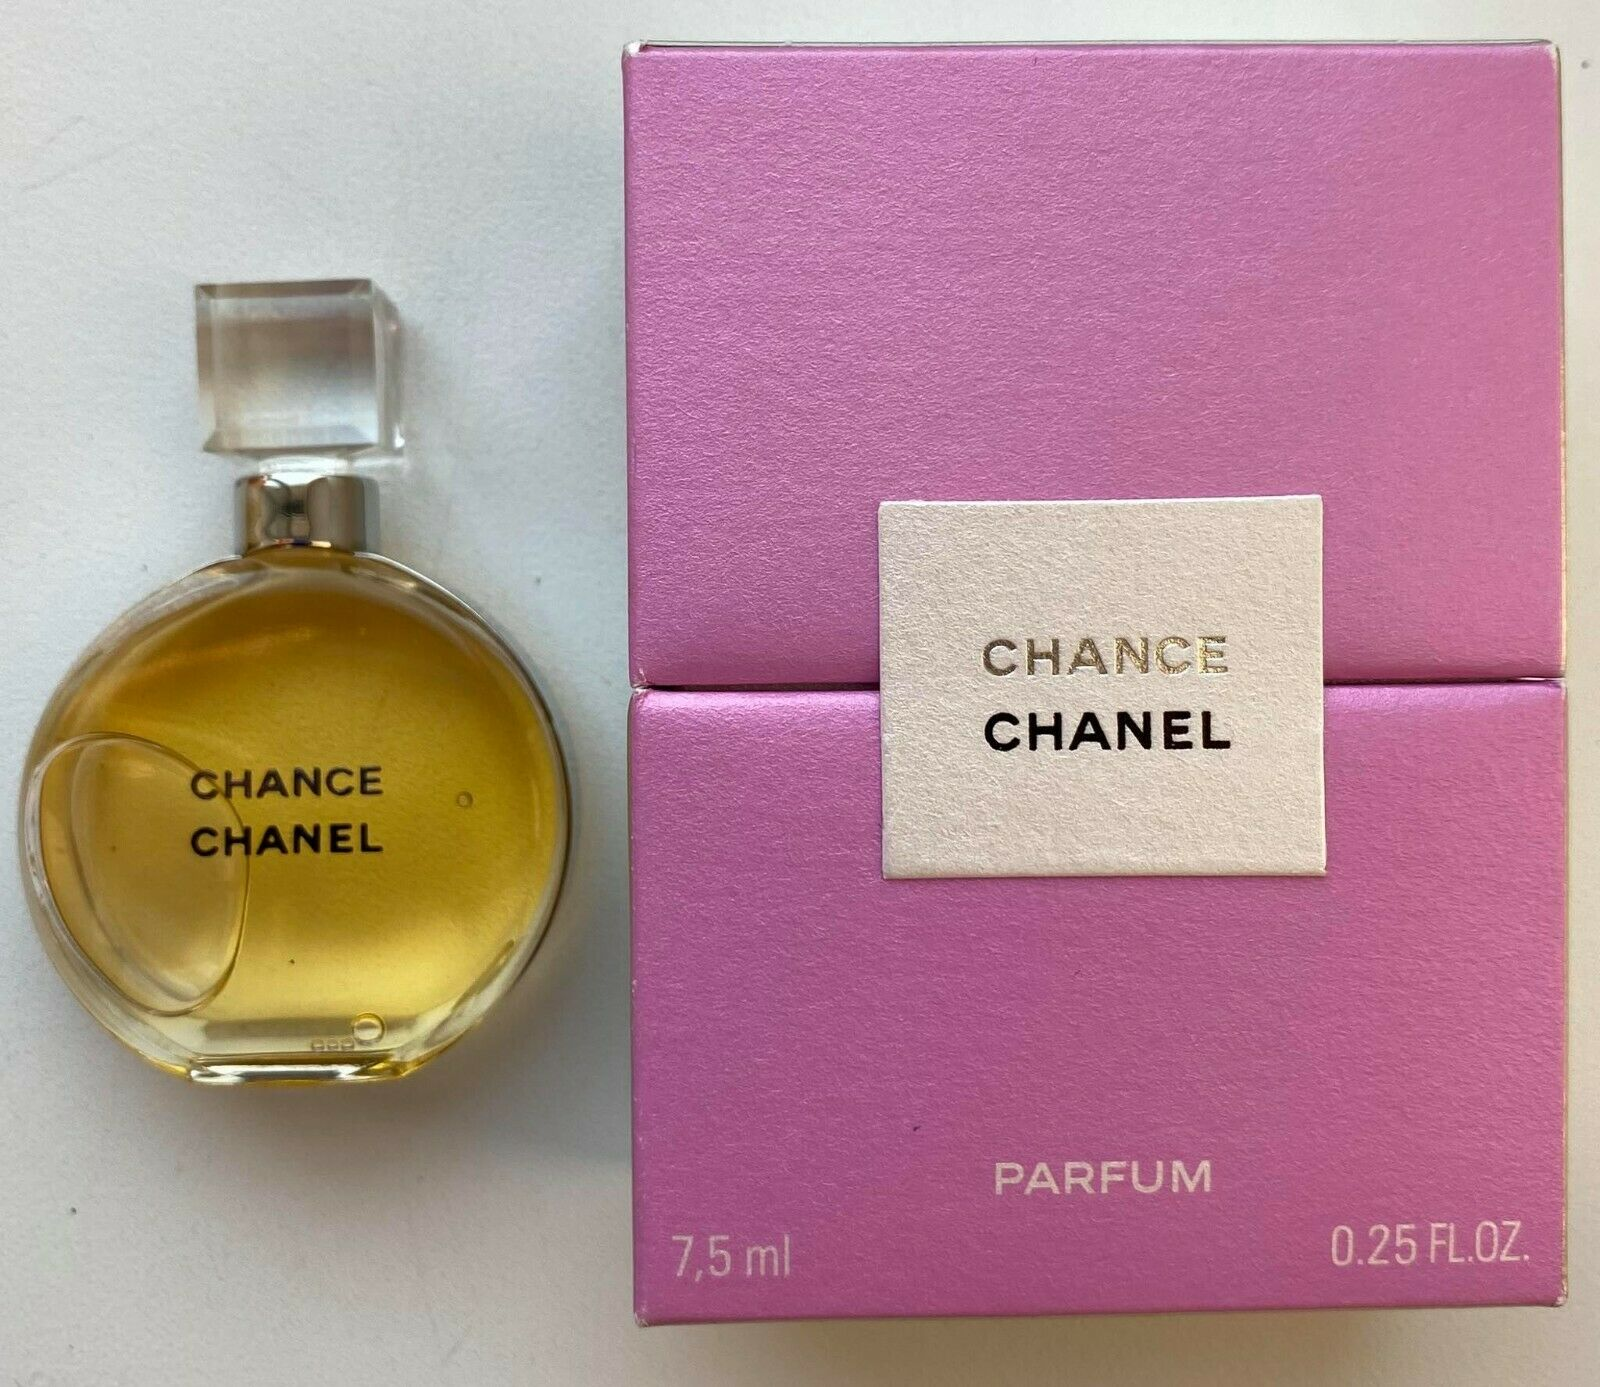 CHANEL CHANCE PARFUM 75 ml 0.25 fl oz